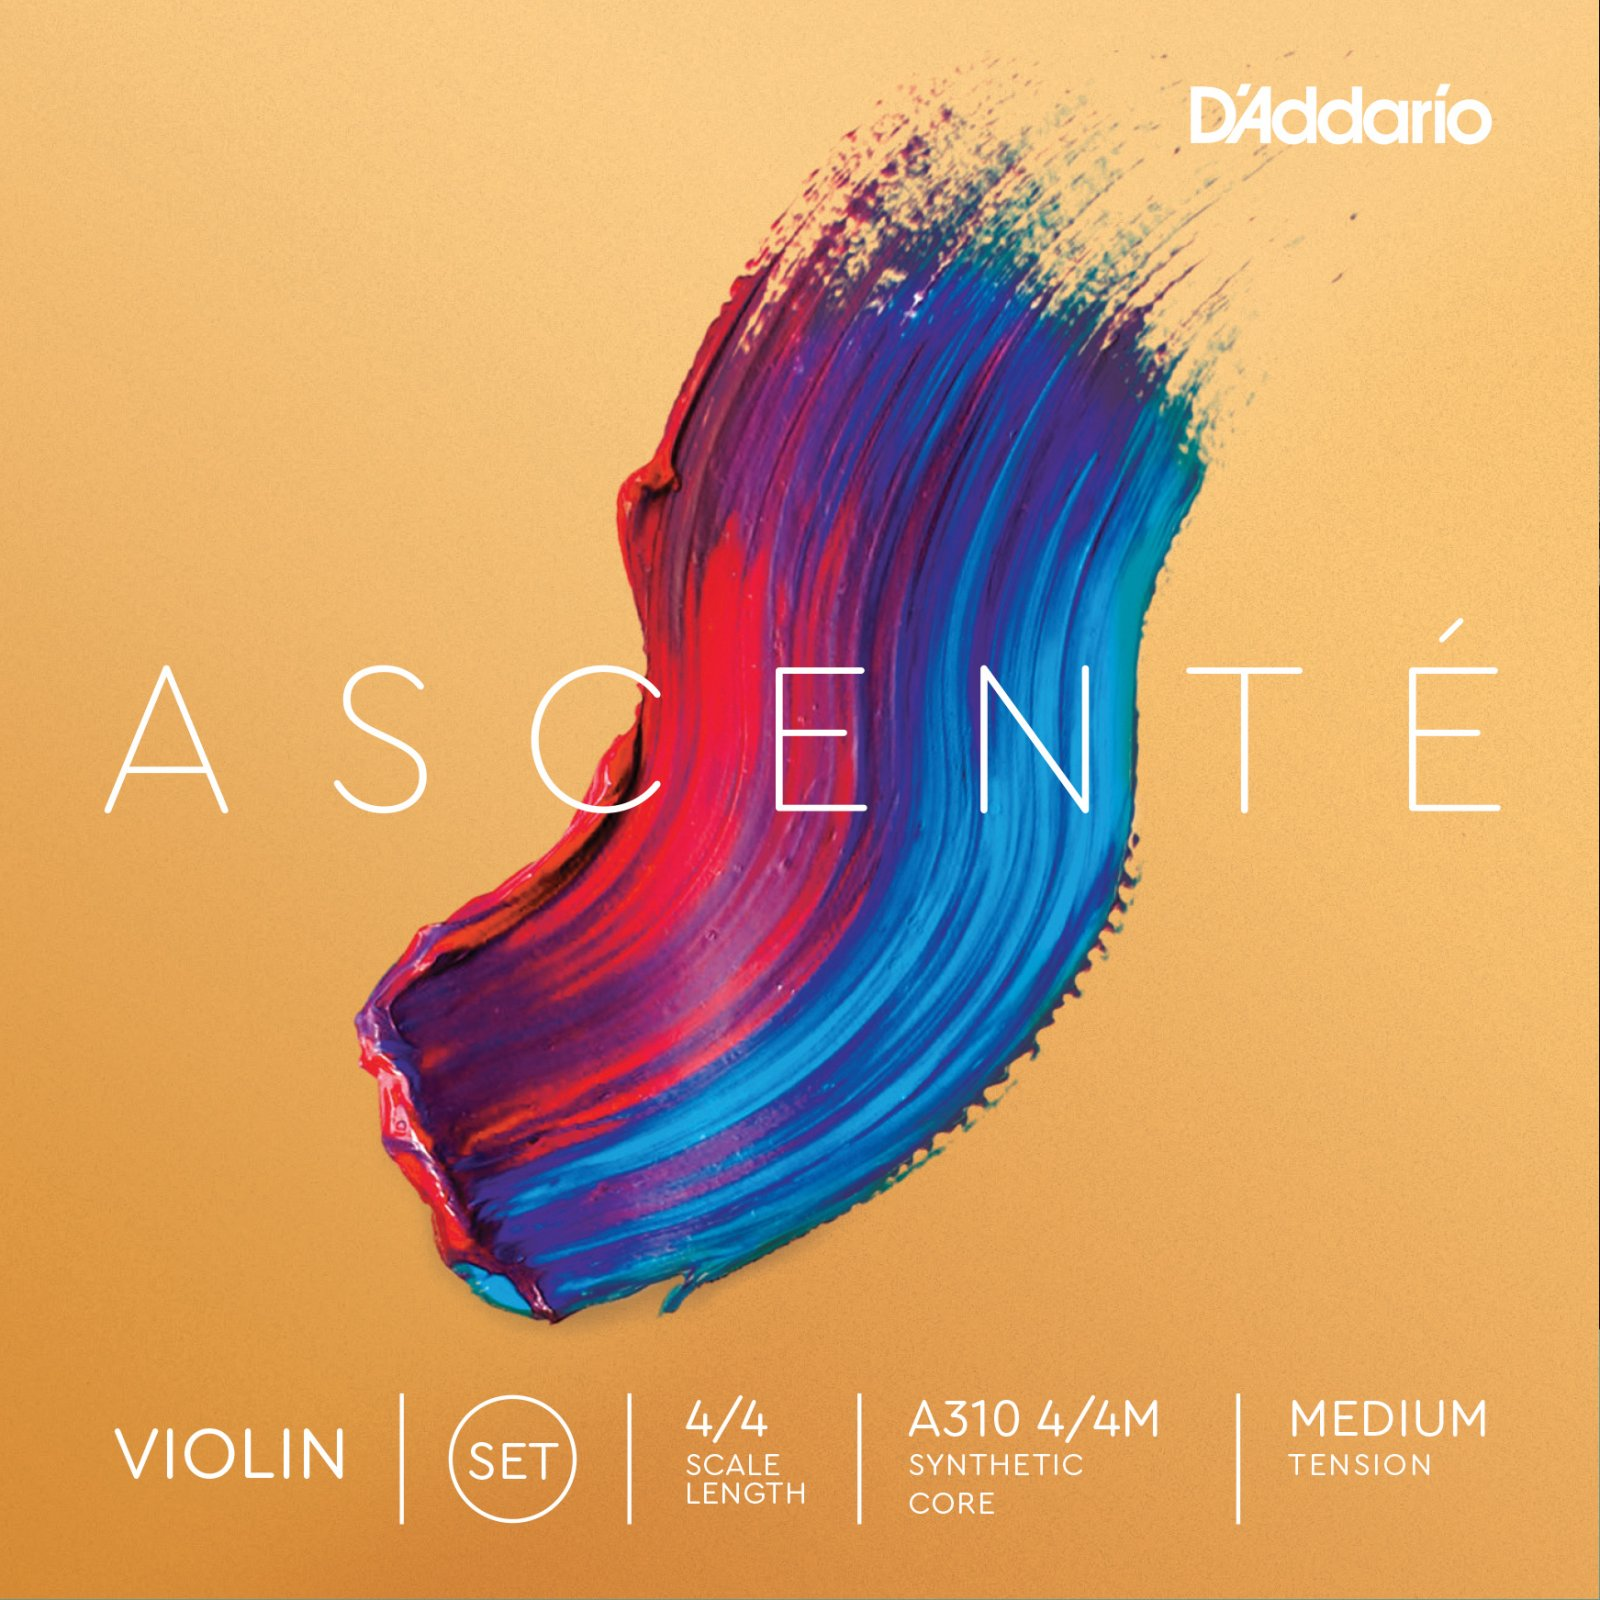 D'Addario Ascente Violin String Set Medium 4/4 (A310)